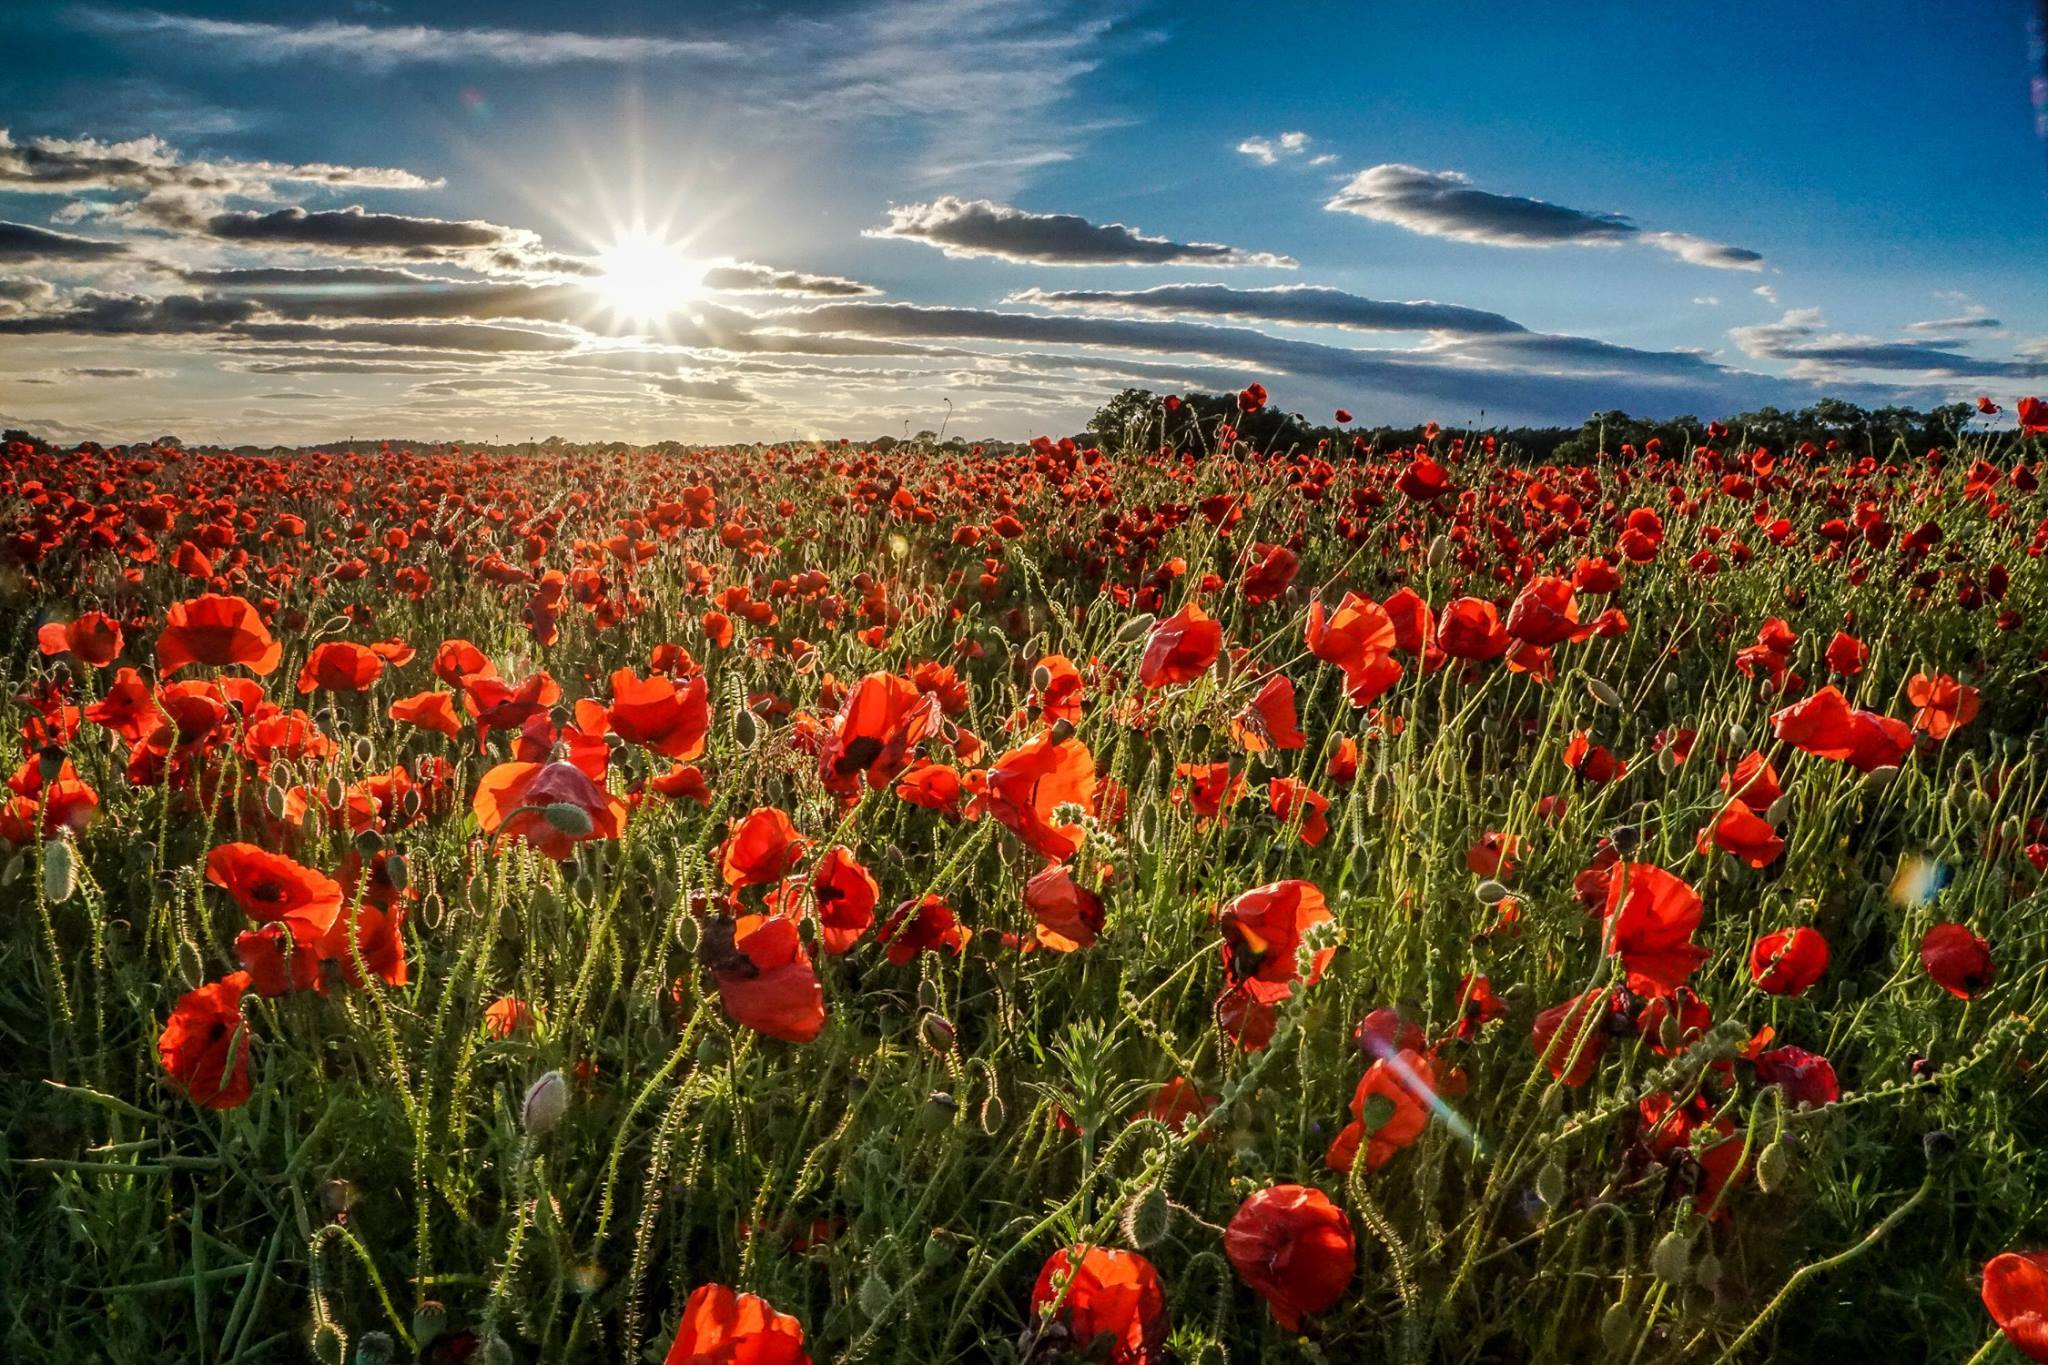 Sue Lascelles took this picture if a field of poppies